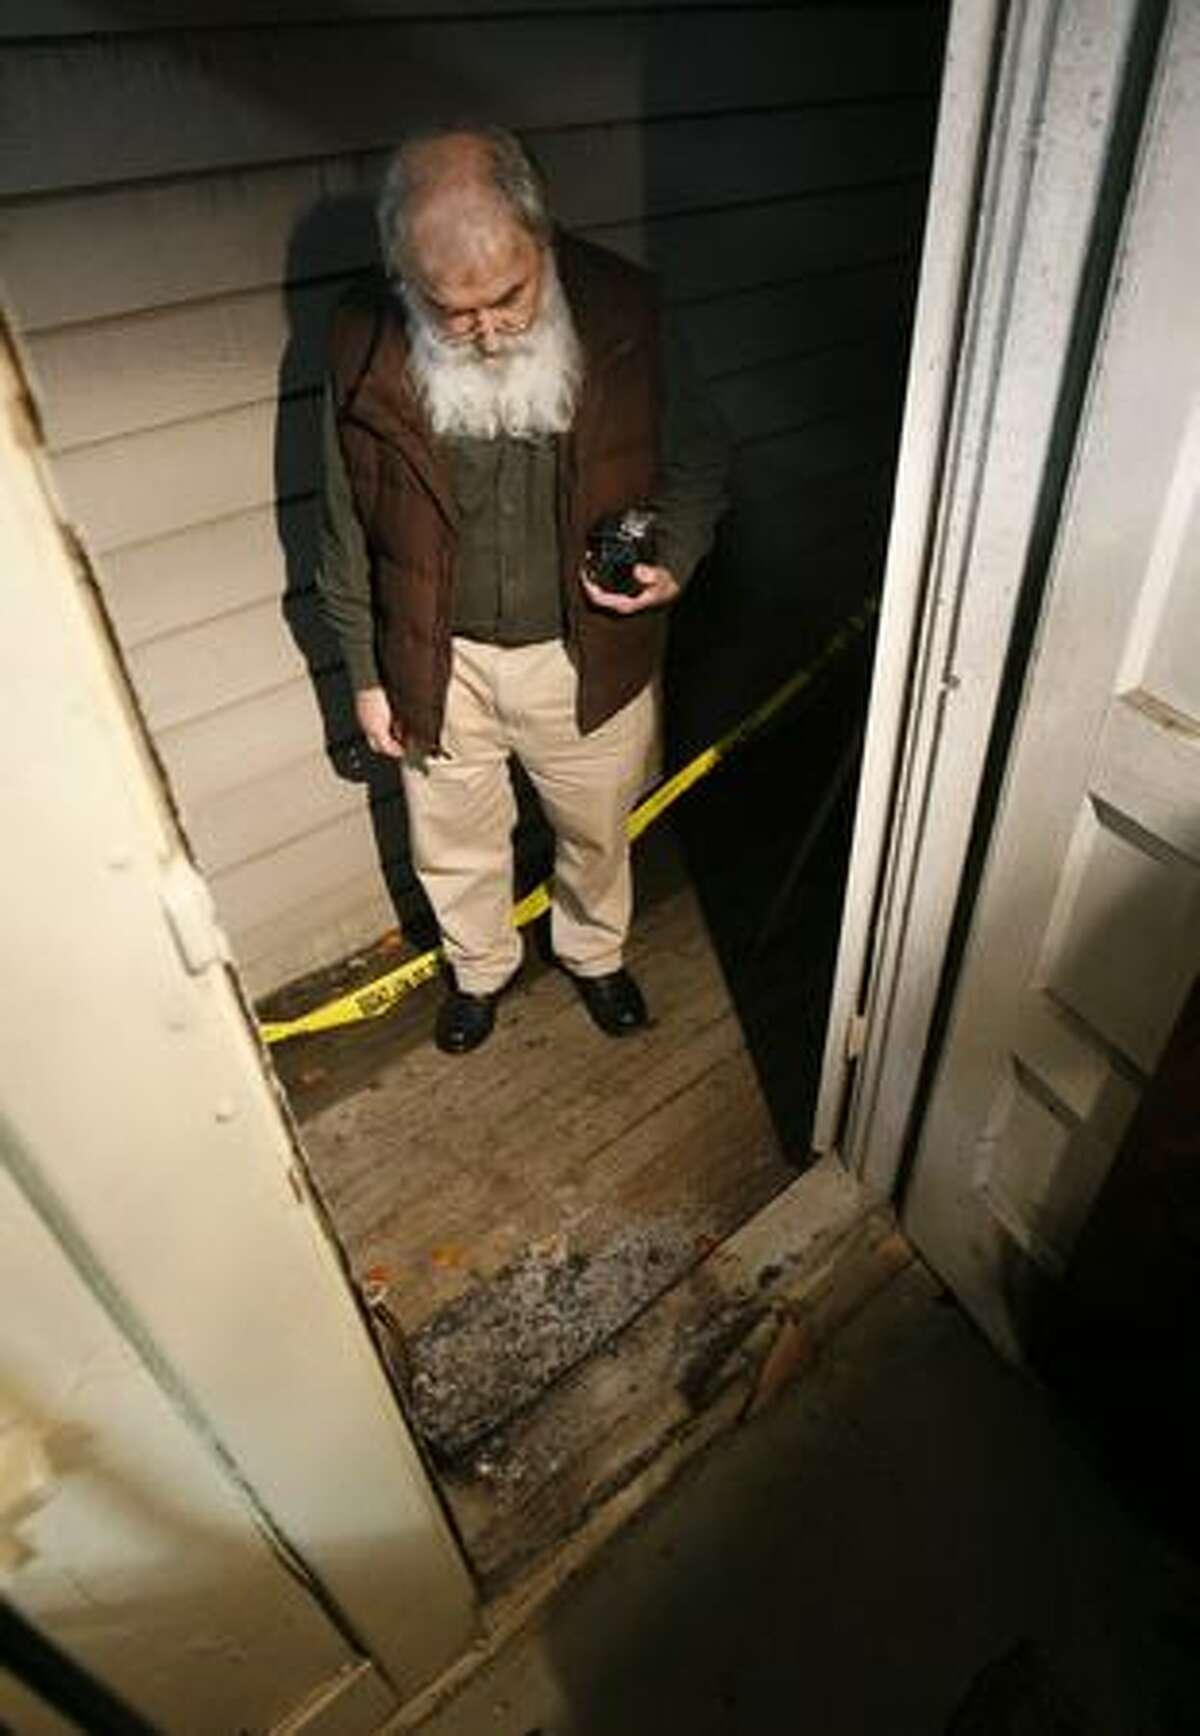 Bob Mullins, owner of Moonphoto, examines the area where an arsonist attempted to ignite his business on Sunday November 8, 2009.